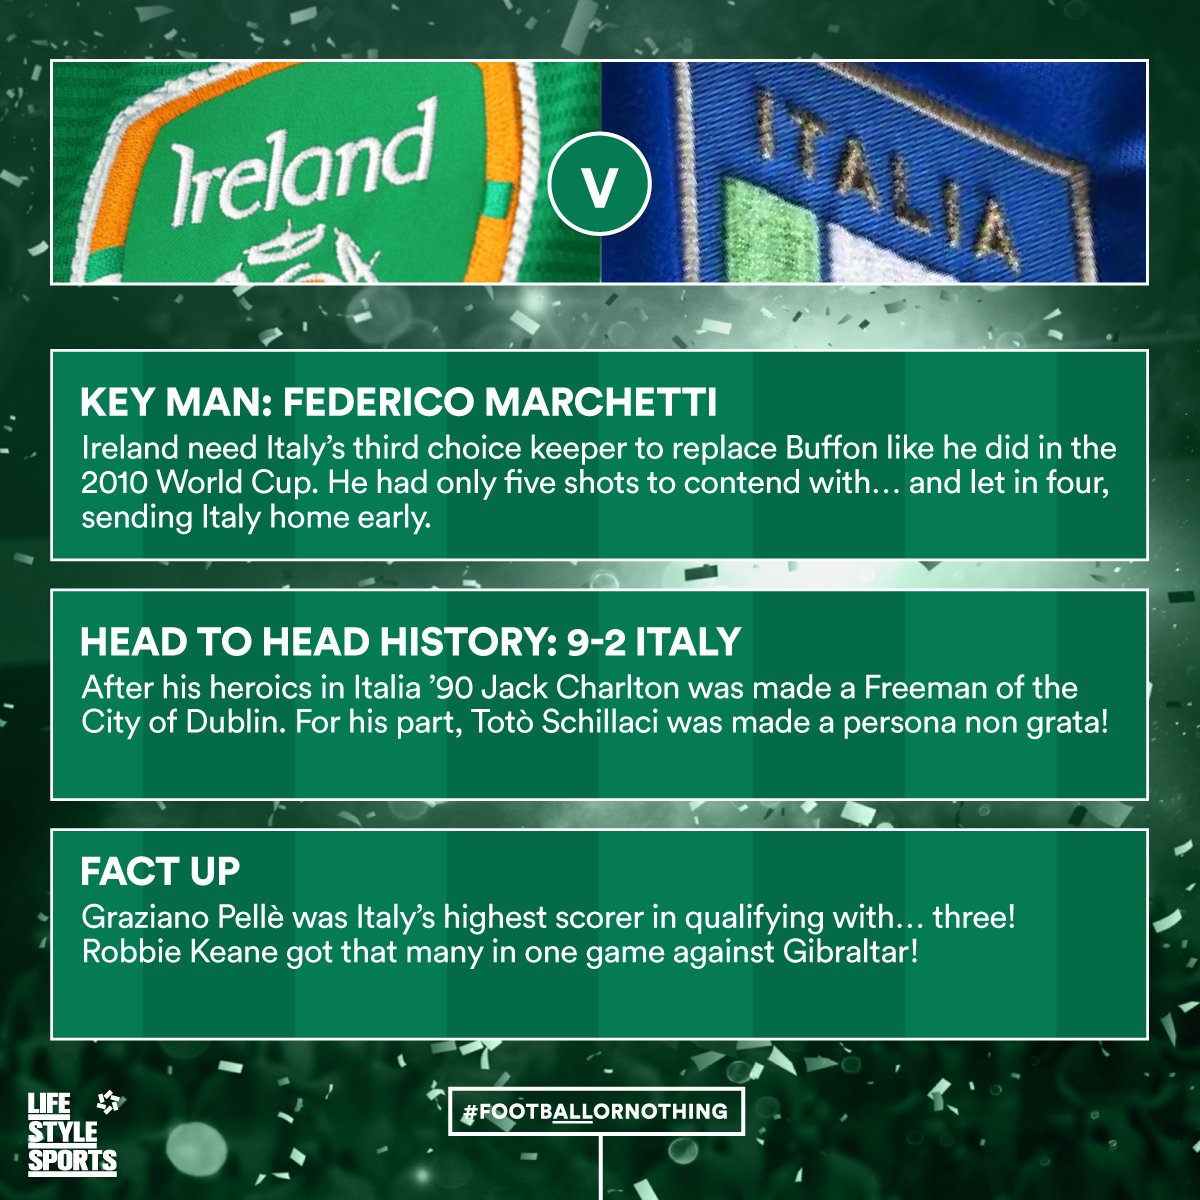 Brush up on your football facts before the big game in our latest #IREvITA Blaggers Guide #FootbALLorNothing https://t.co/3QZ9yNvDkQ